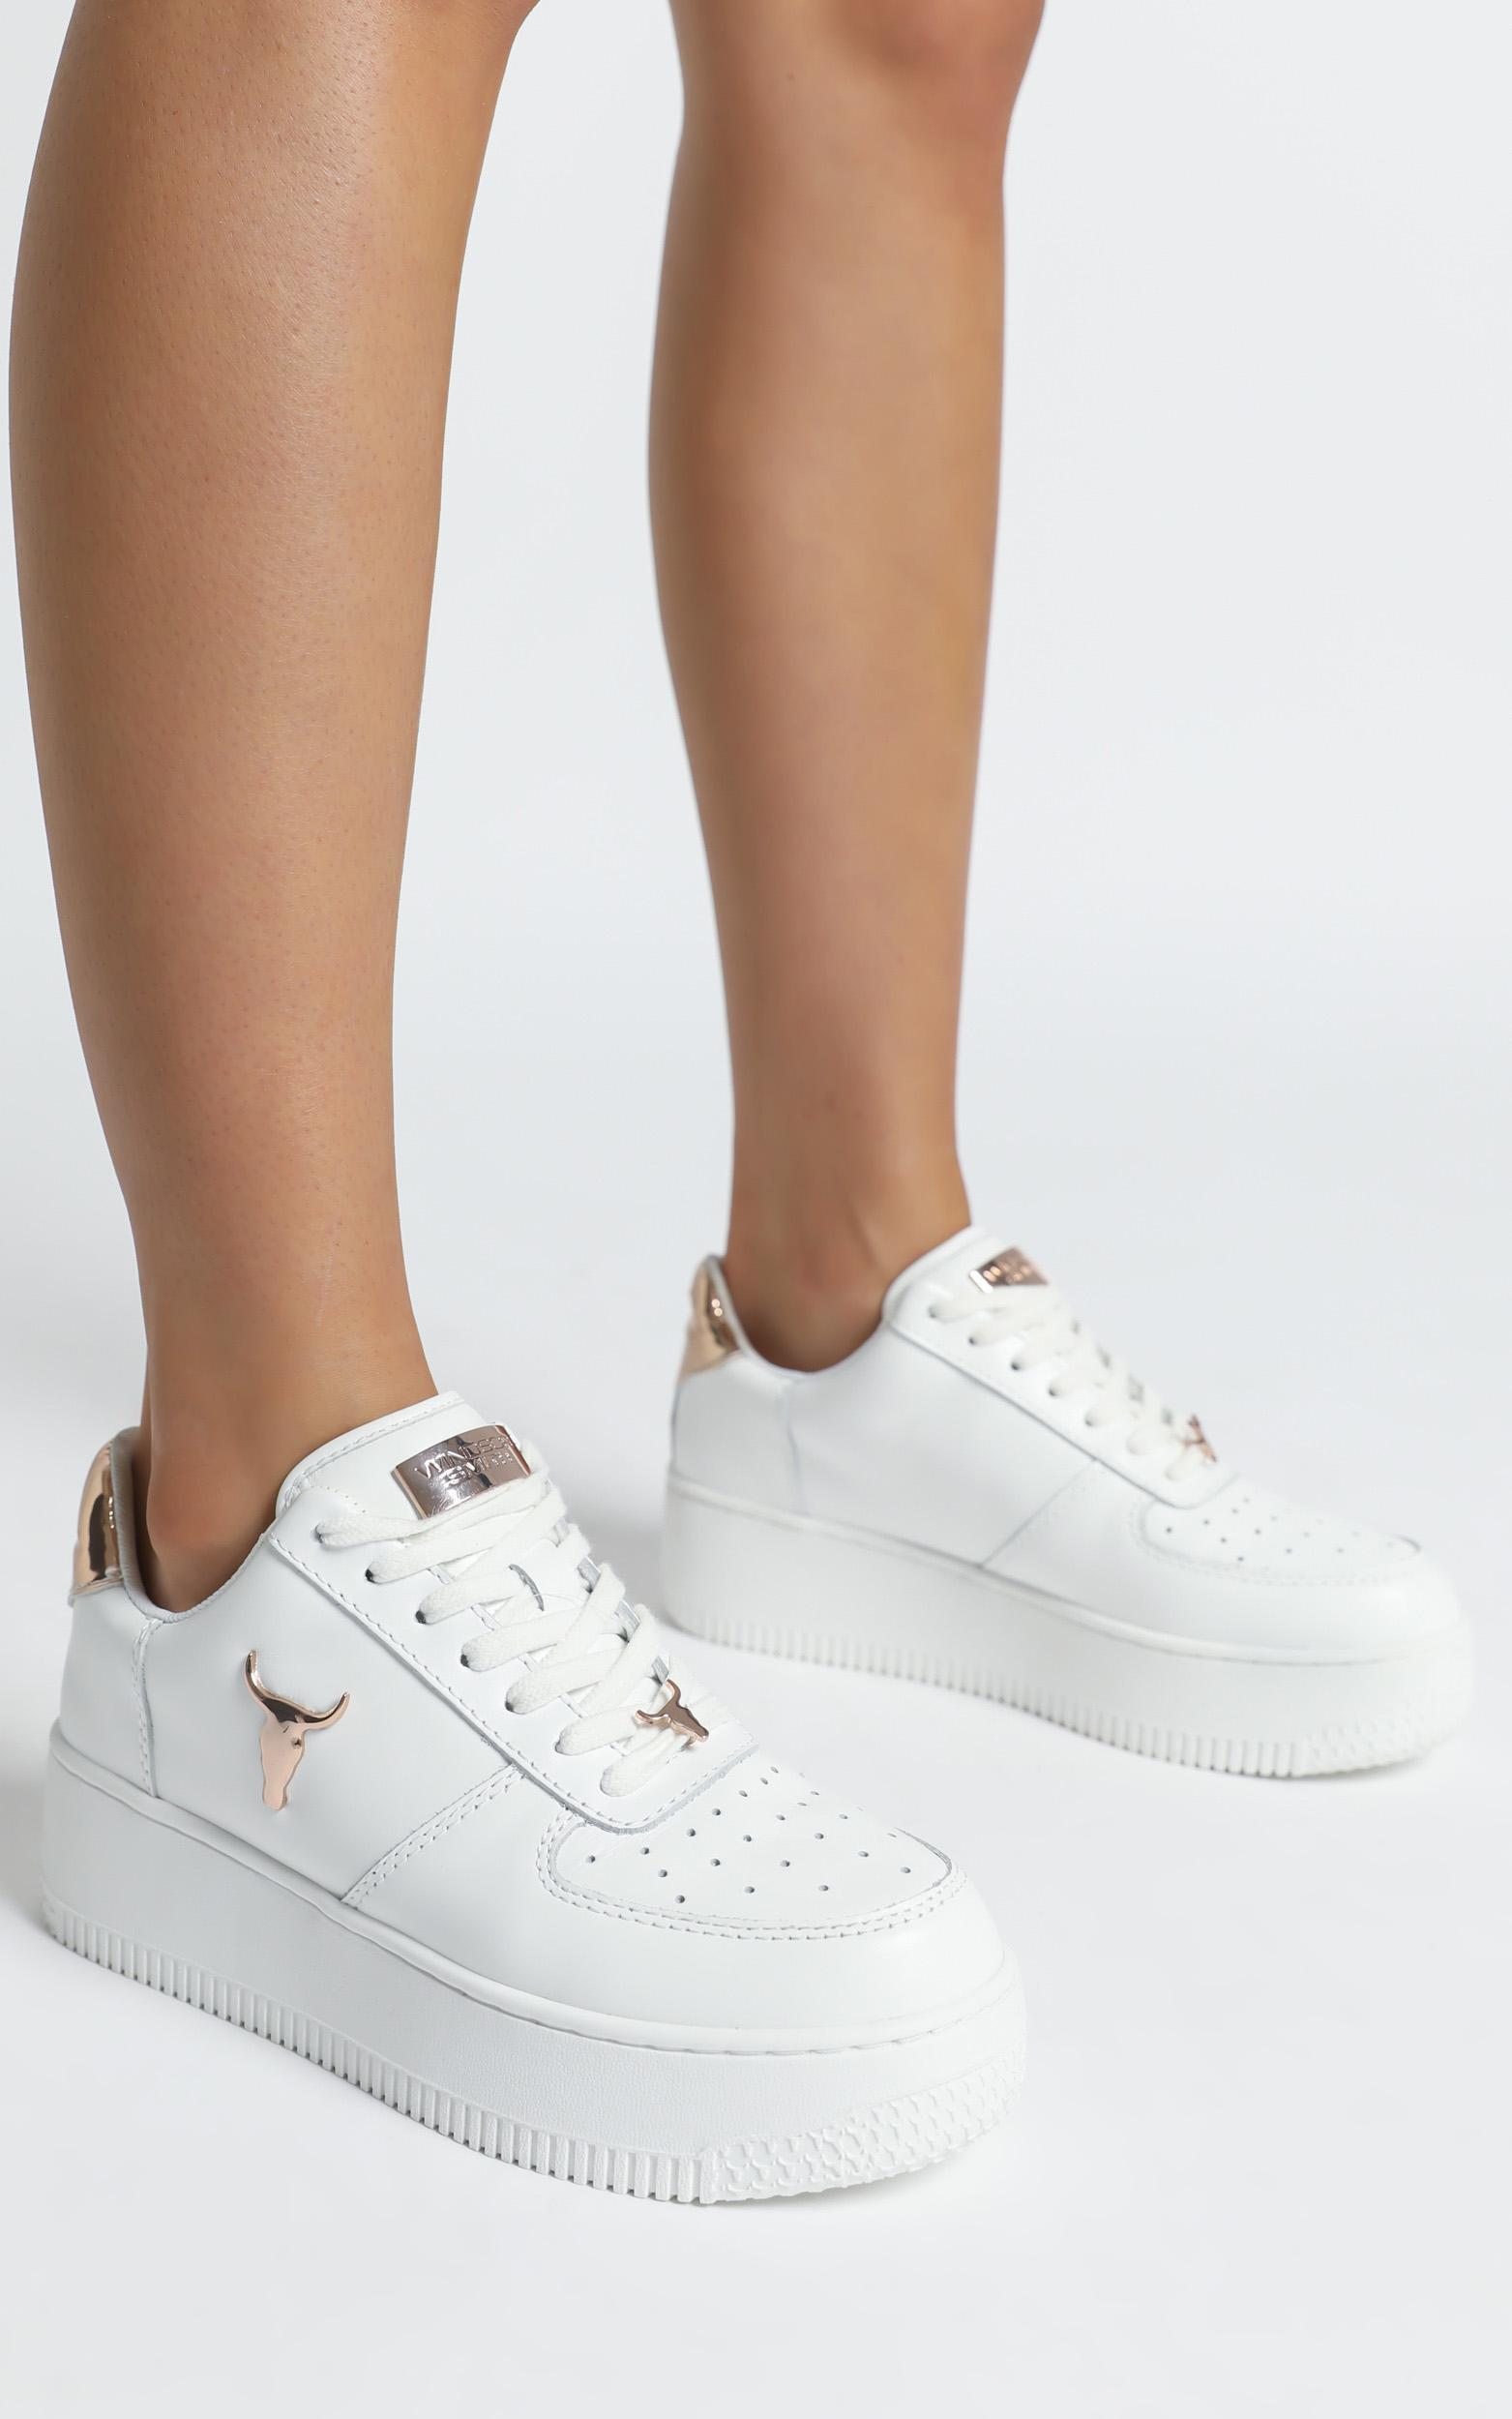 Windsor Smith - Rich Sneakers in White Leather With Rose Gold 3D Bull Hardware - 6, WHT2, hi-res image number null